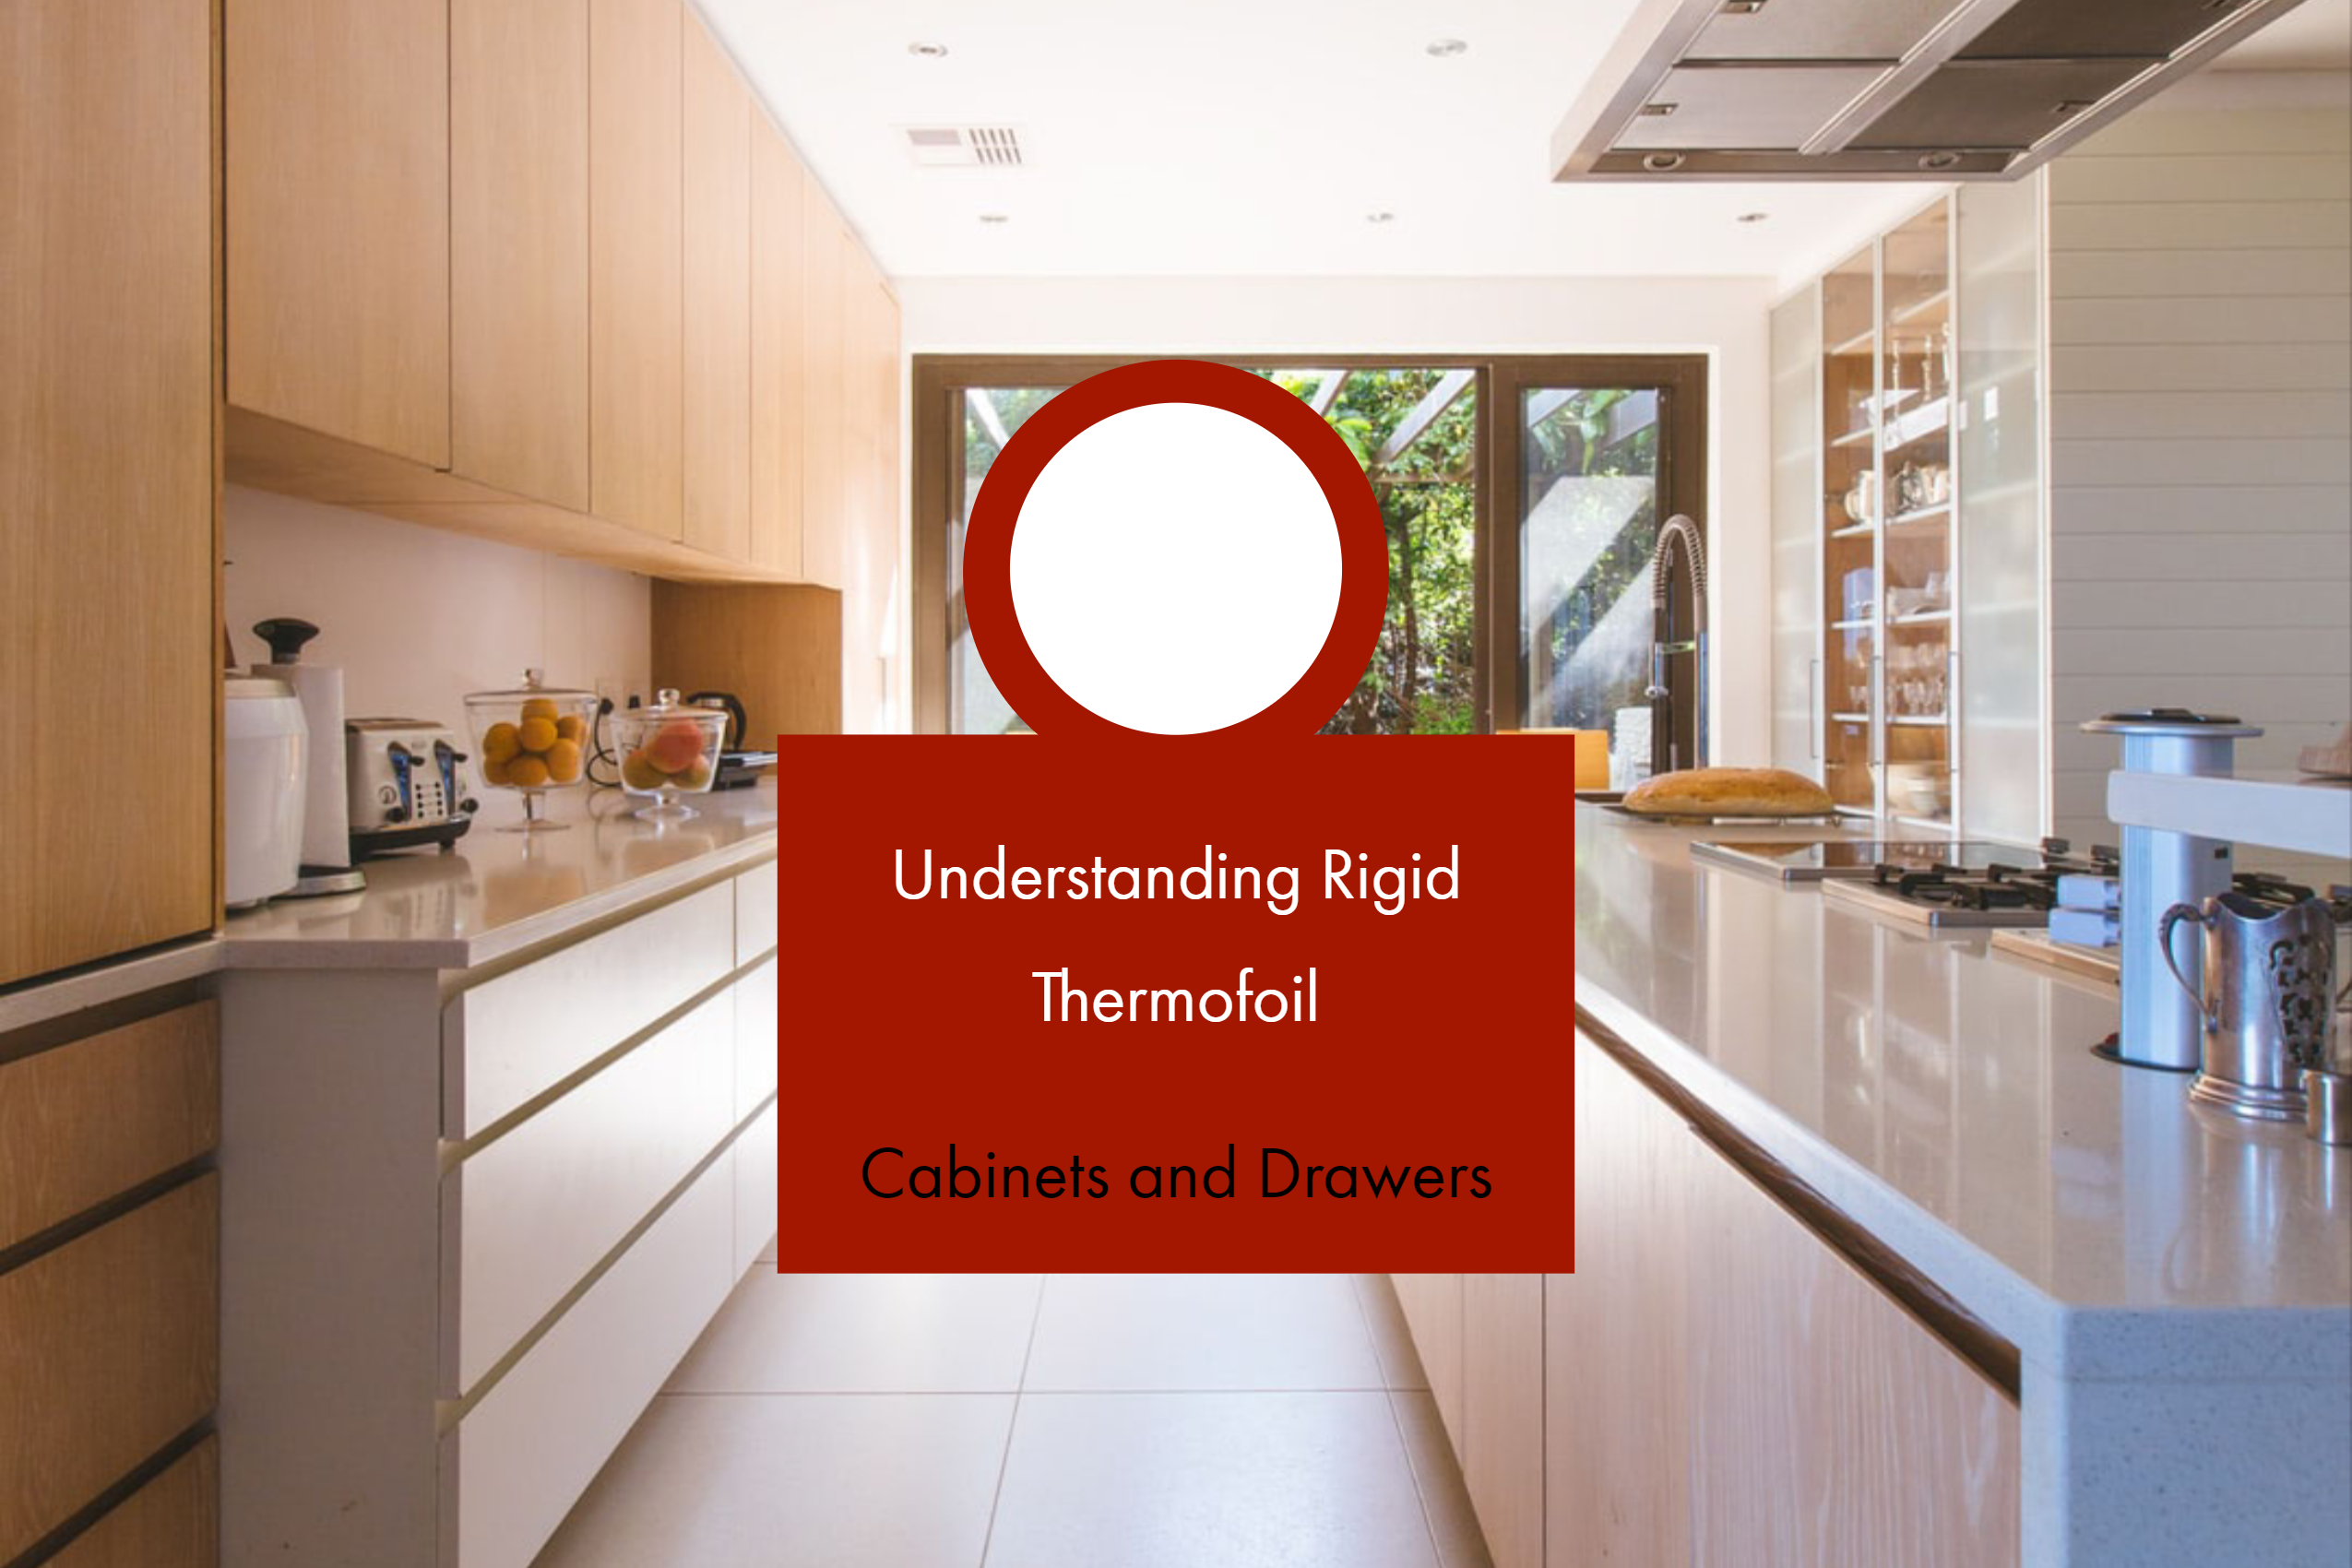 Understanding Rigid Thermofoil  Cabinets and Drawers